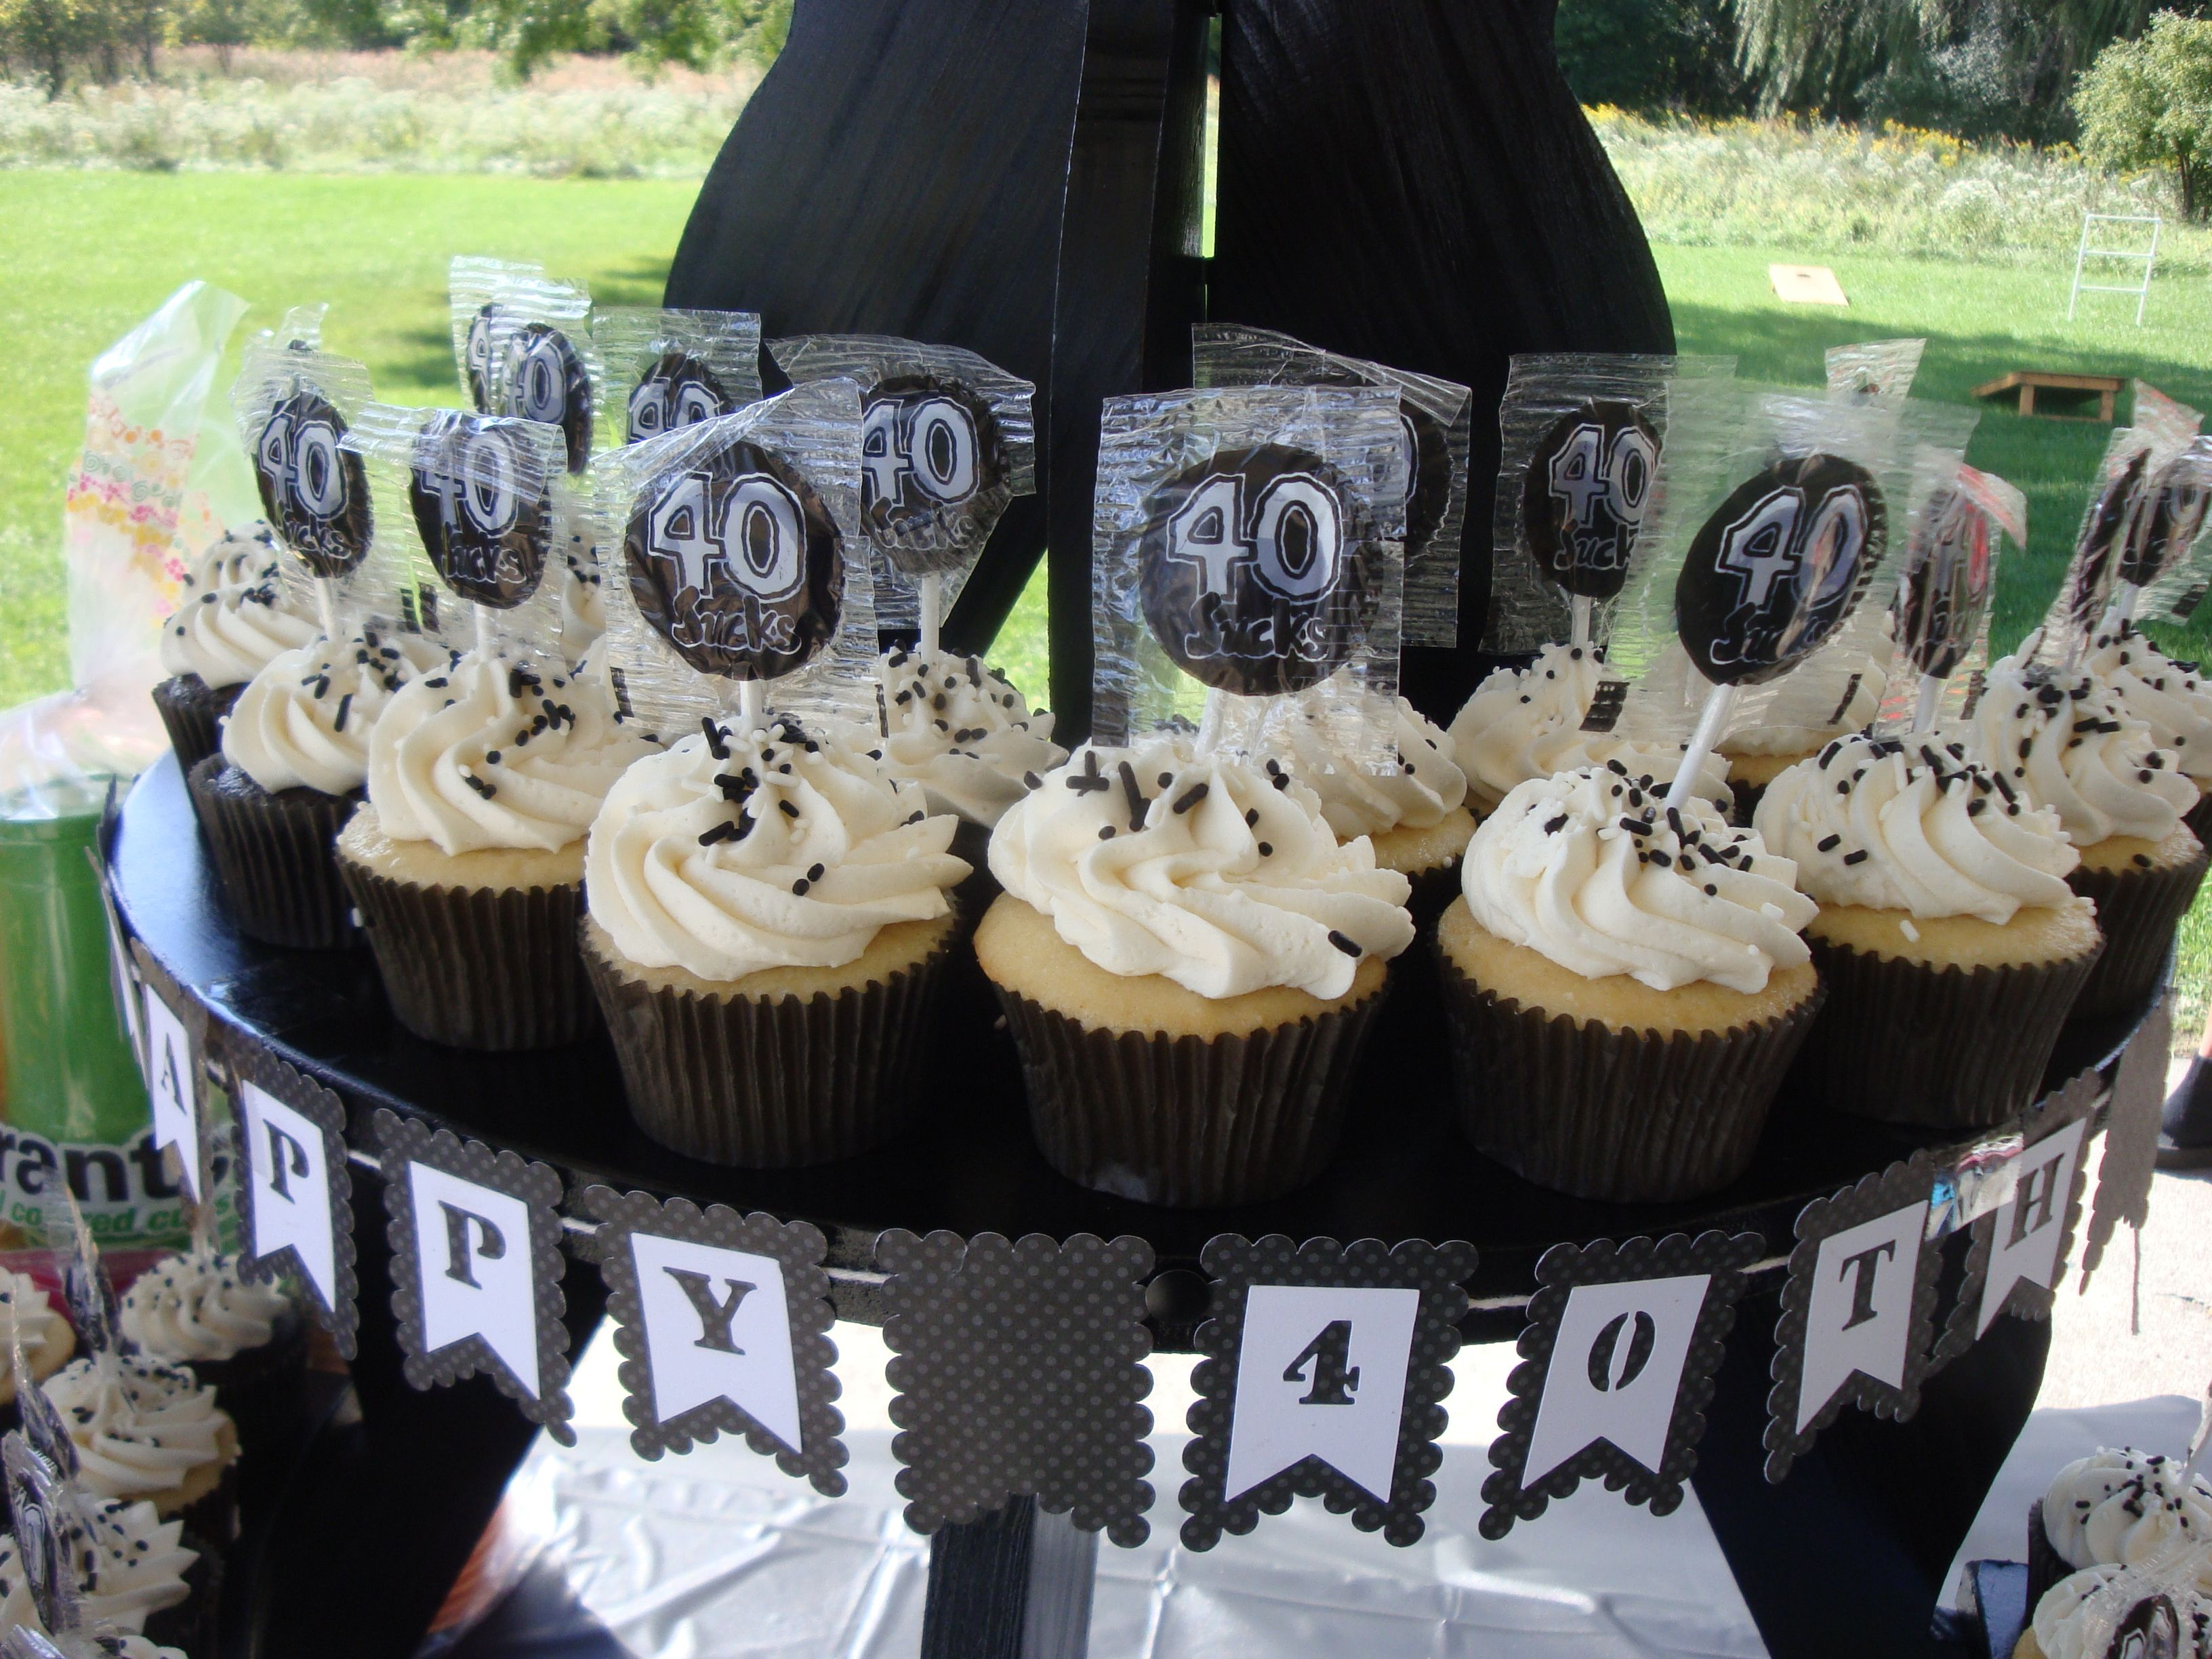 40th Birthday Cupcakes Cupcake Scoops Pinterest 40th birthday